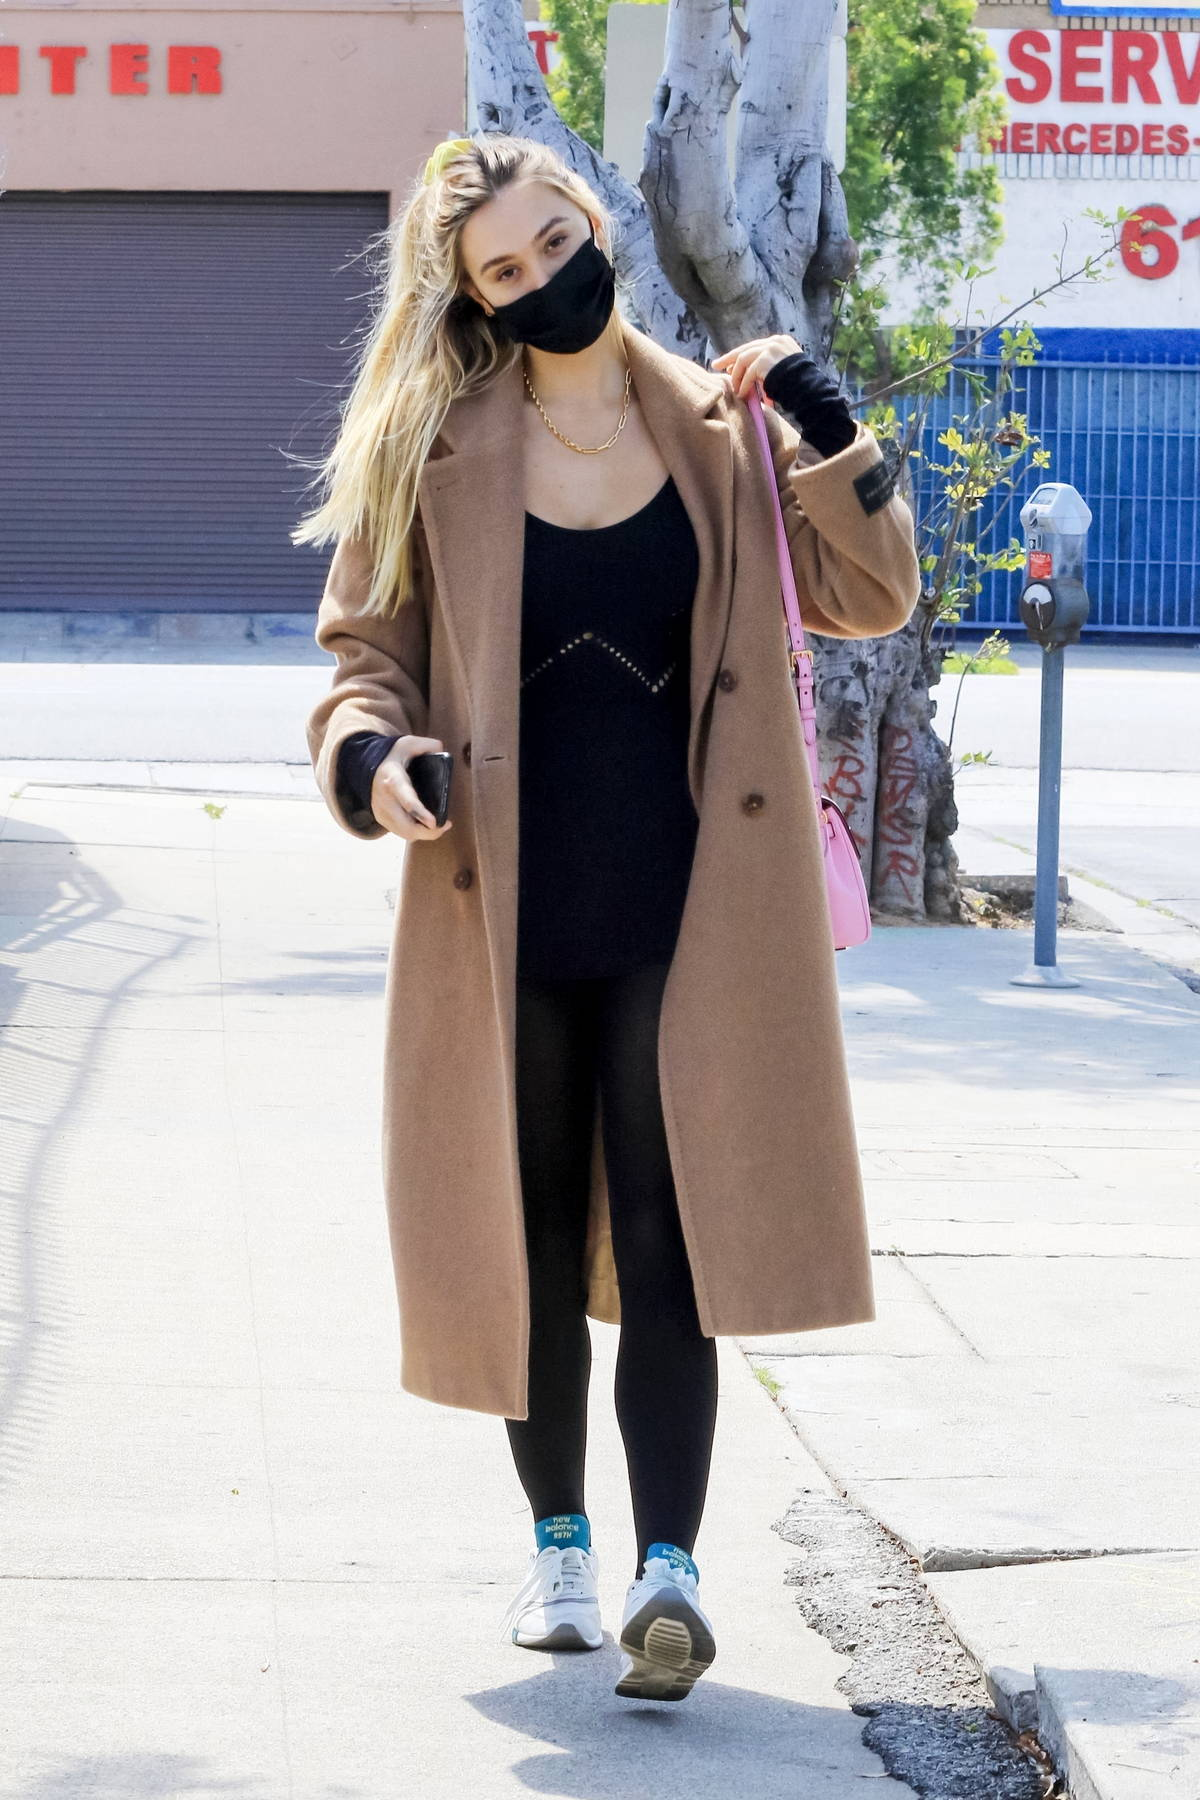 Alexis Ren looks great in her black ballet outfit while attending a ballet class in Los Angeles